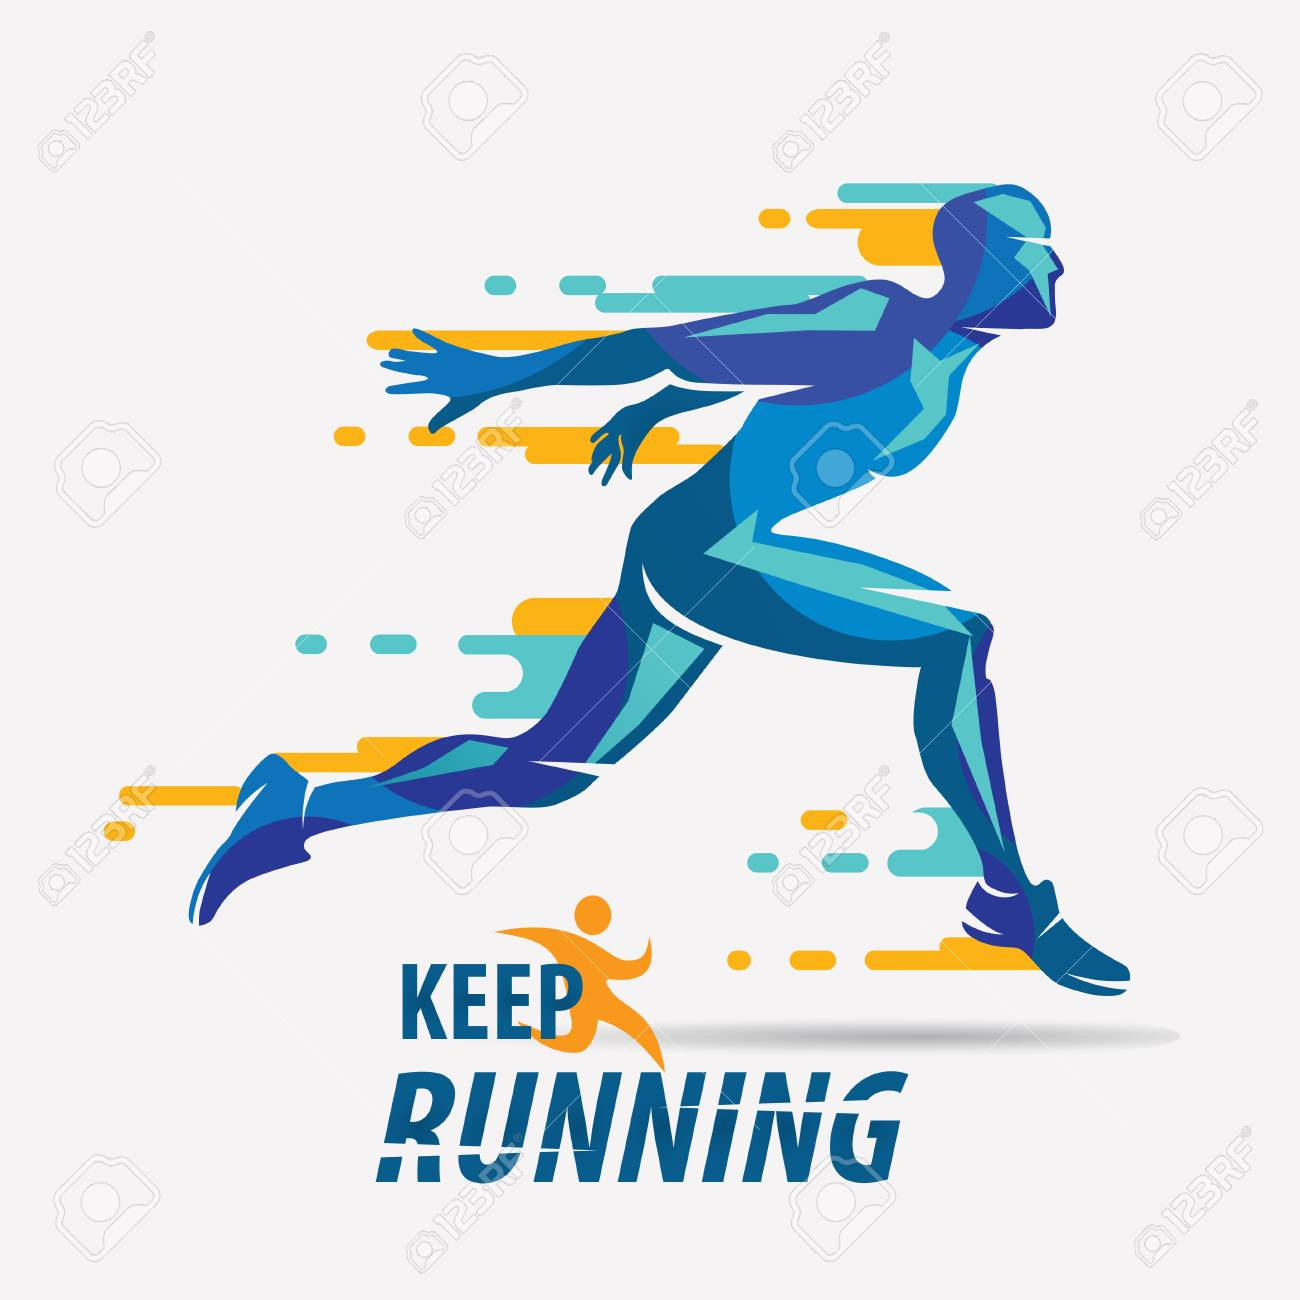 running man vector symbol, sport and competition concept background - 87115248